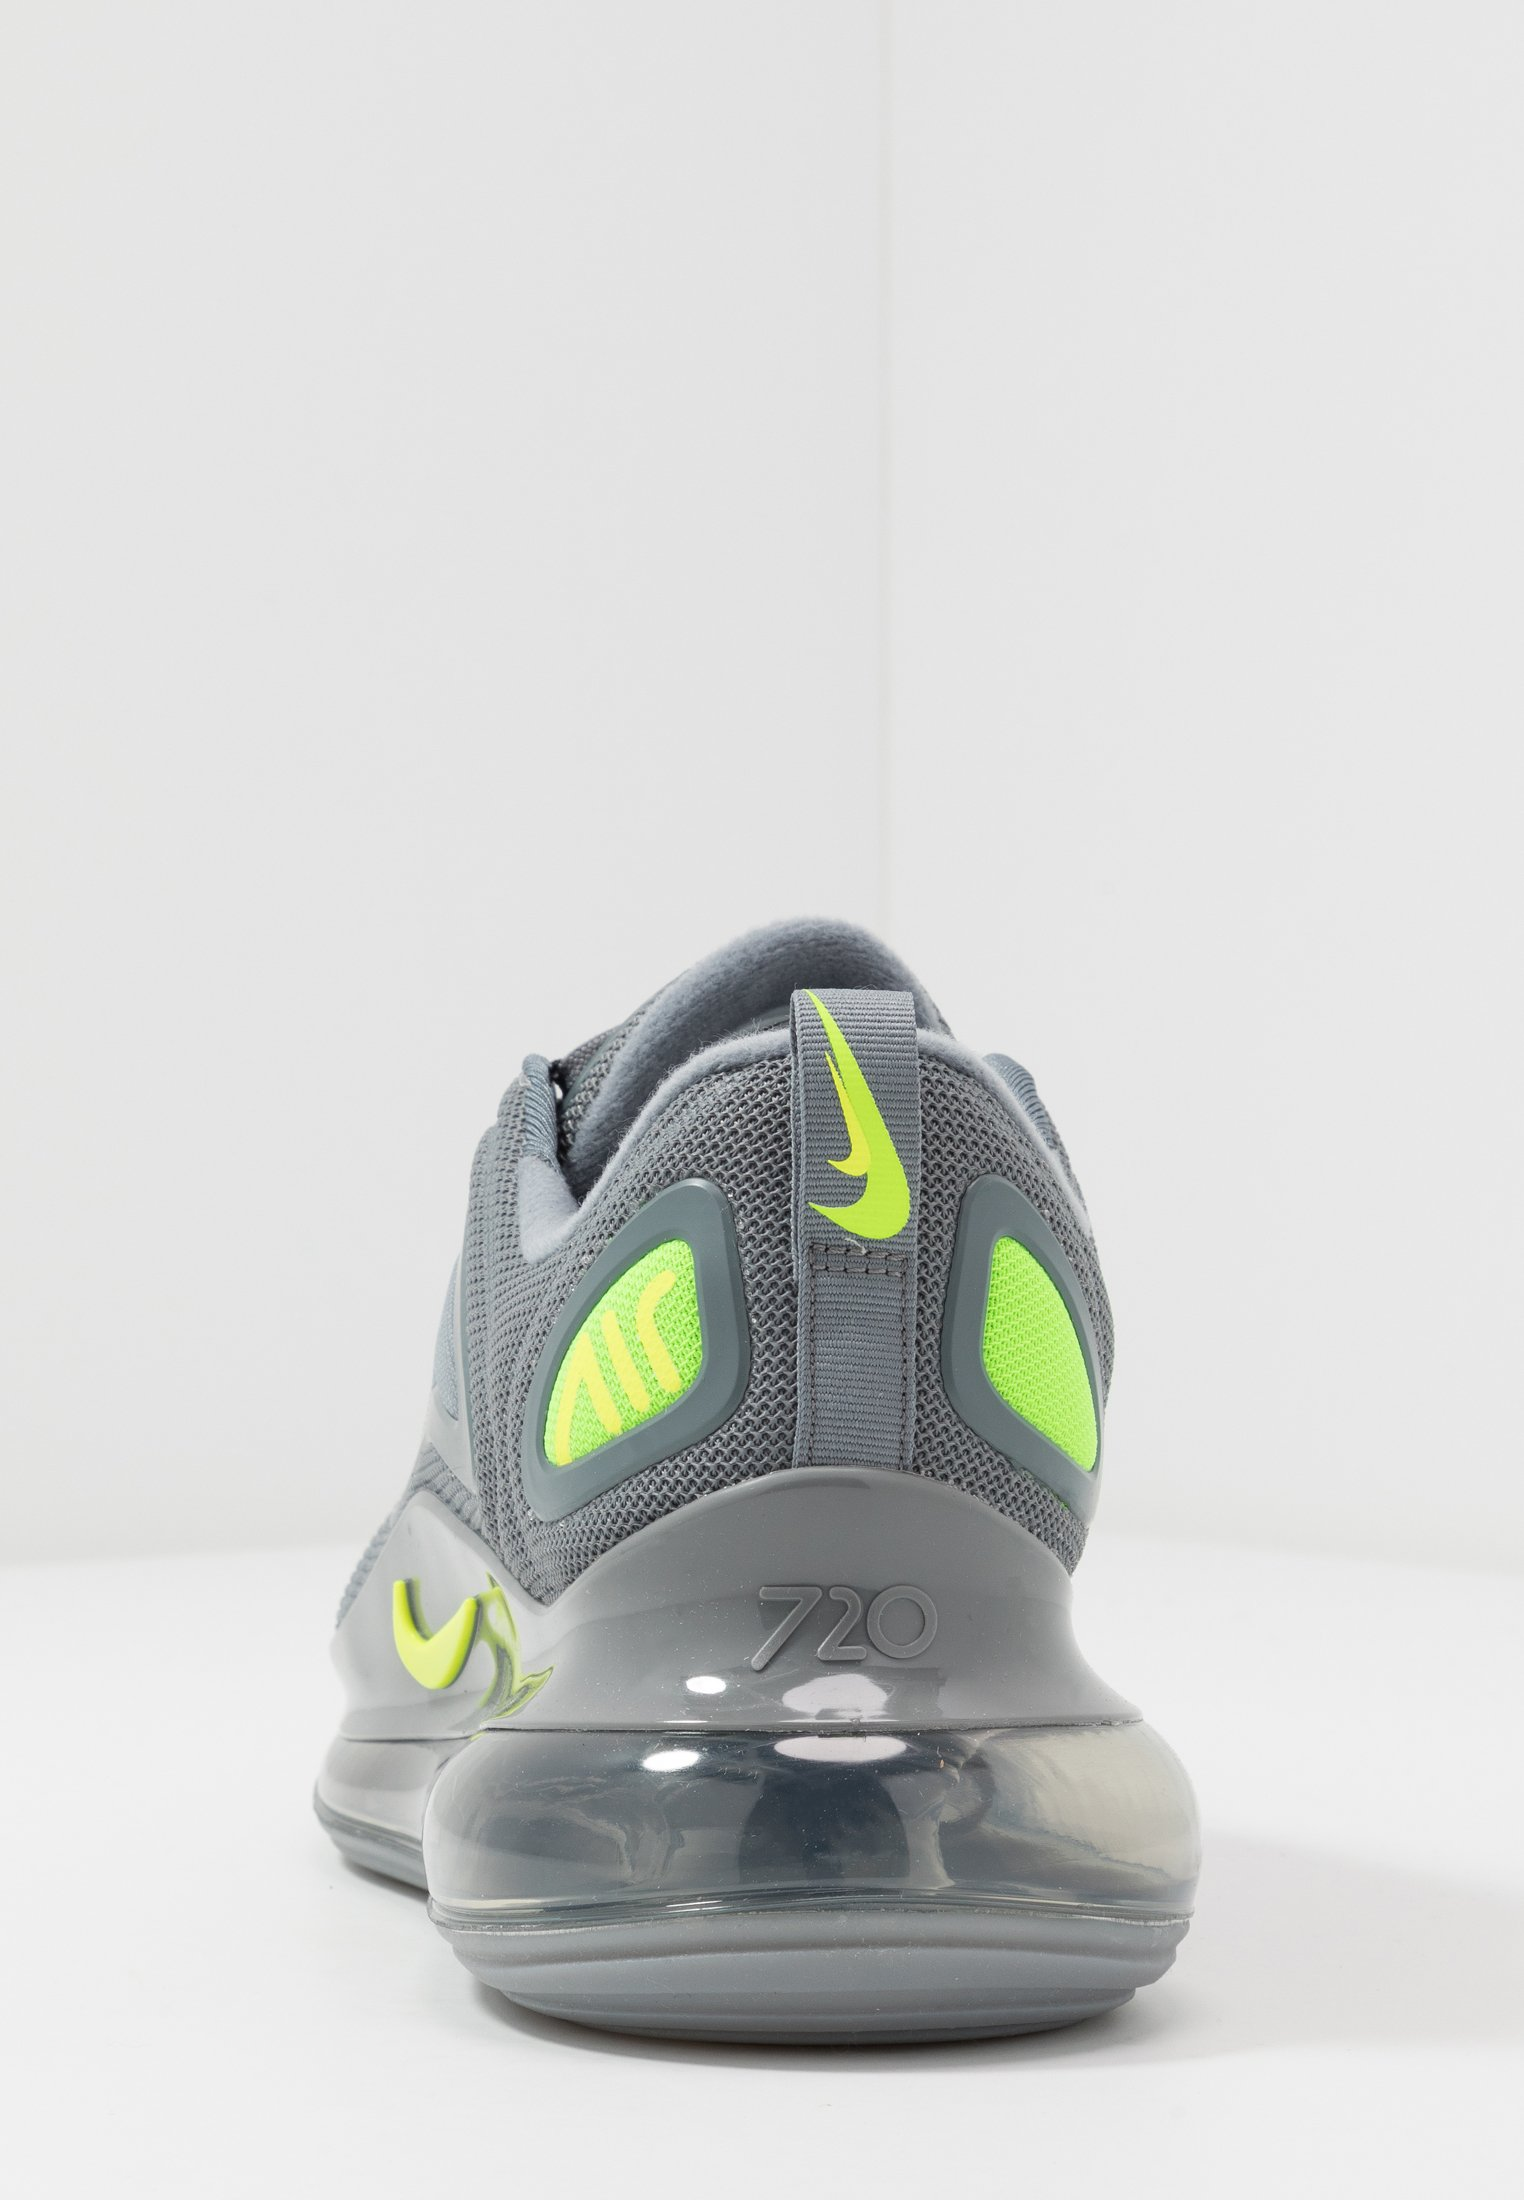 Nike Sportswear Air Max 720 - Sneakers Basse Cool Grey/volt/electric Green/black lJ3Q6in